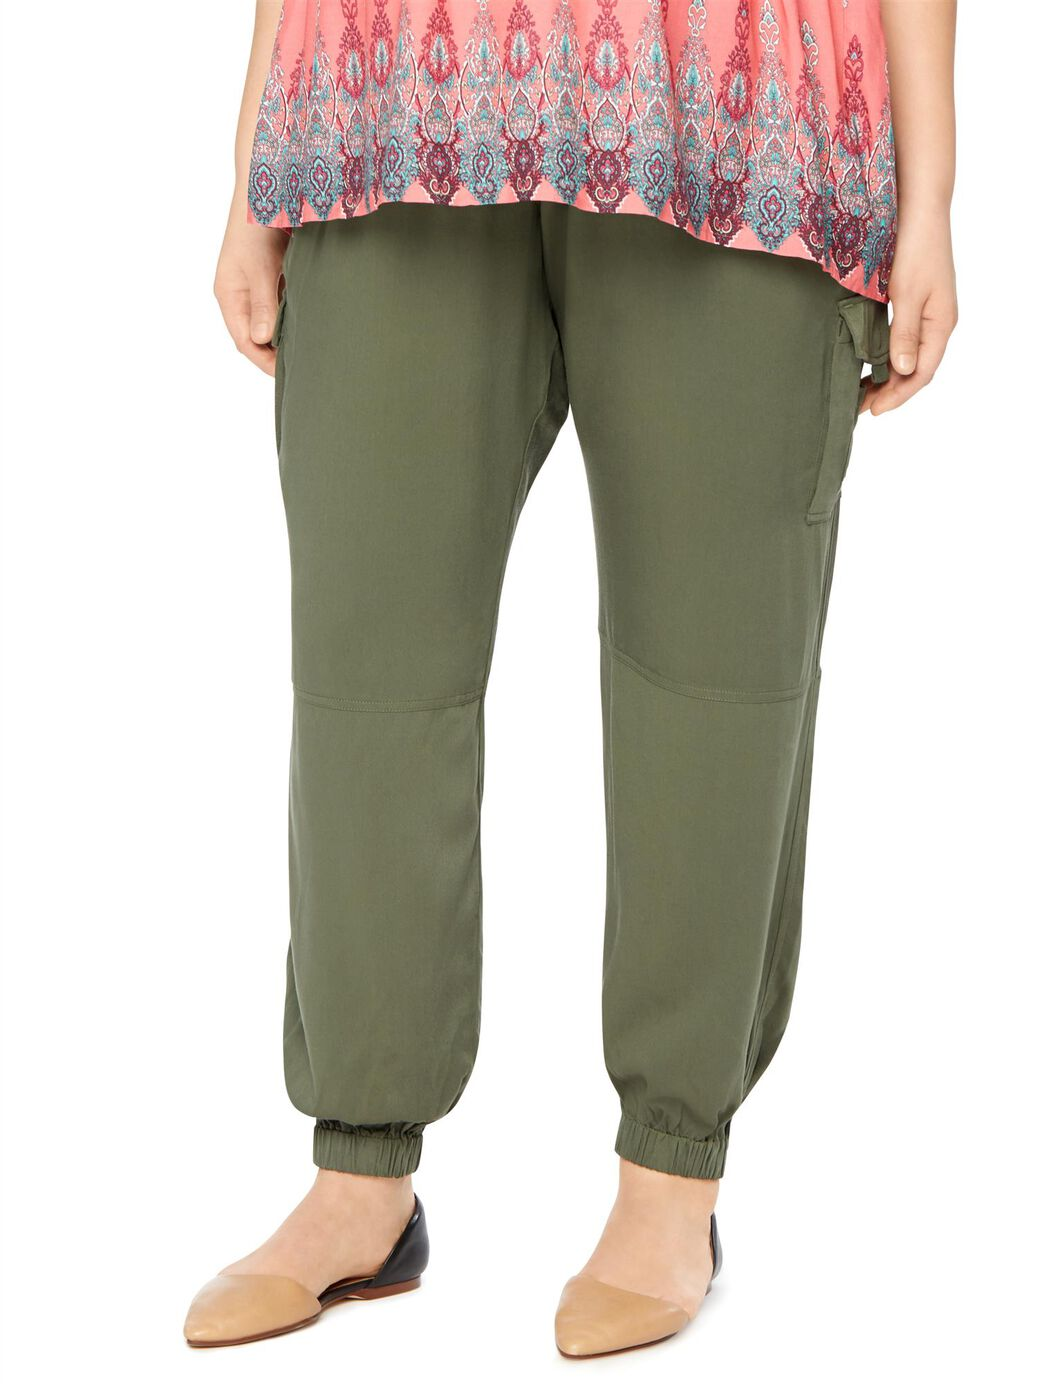 Plus Size Secret Fit Belly Cargo Maternity Jogger Pant at Motherhood Maternity in Victor, NY | Tuggl